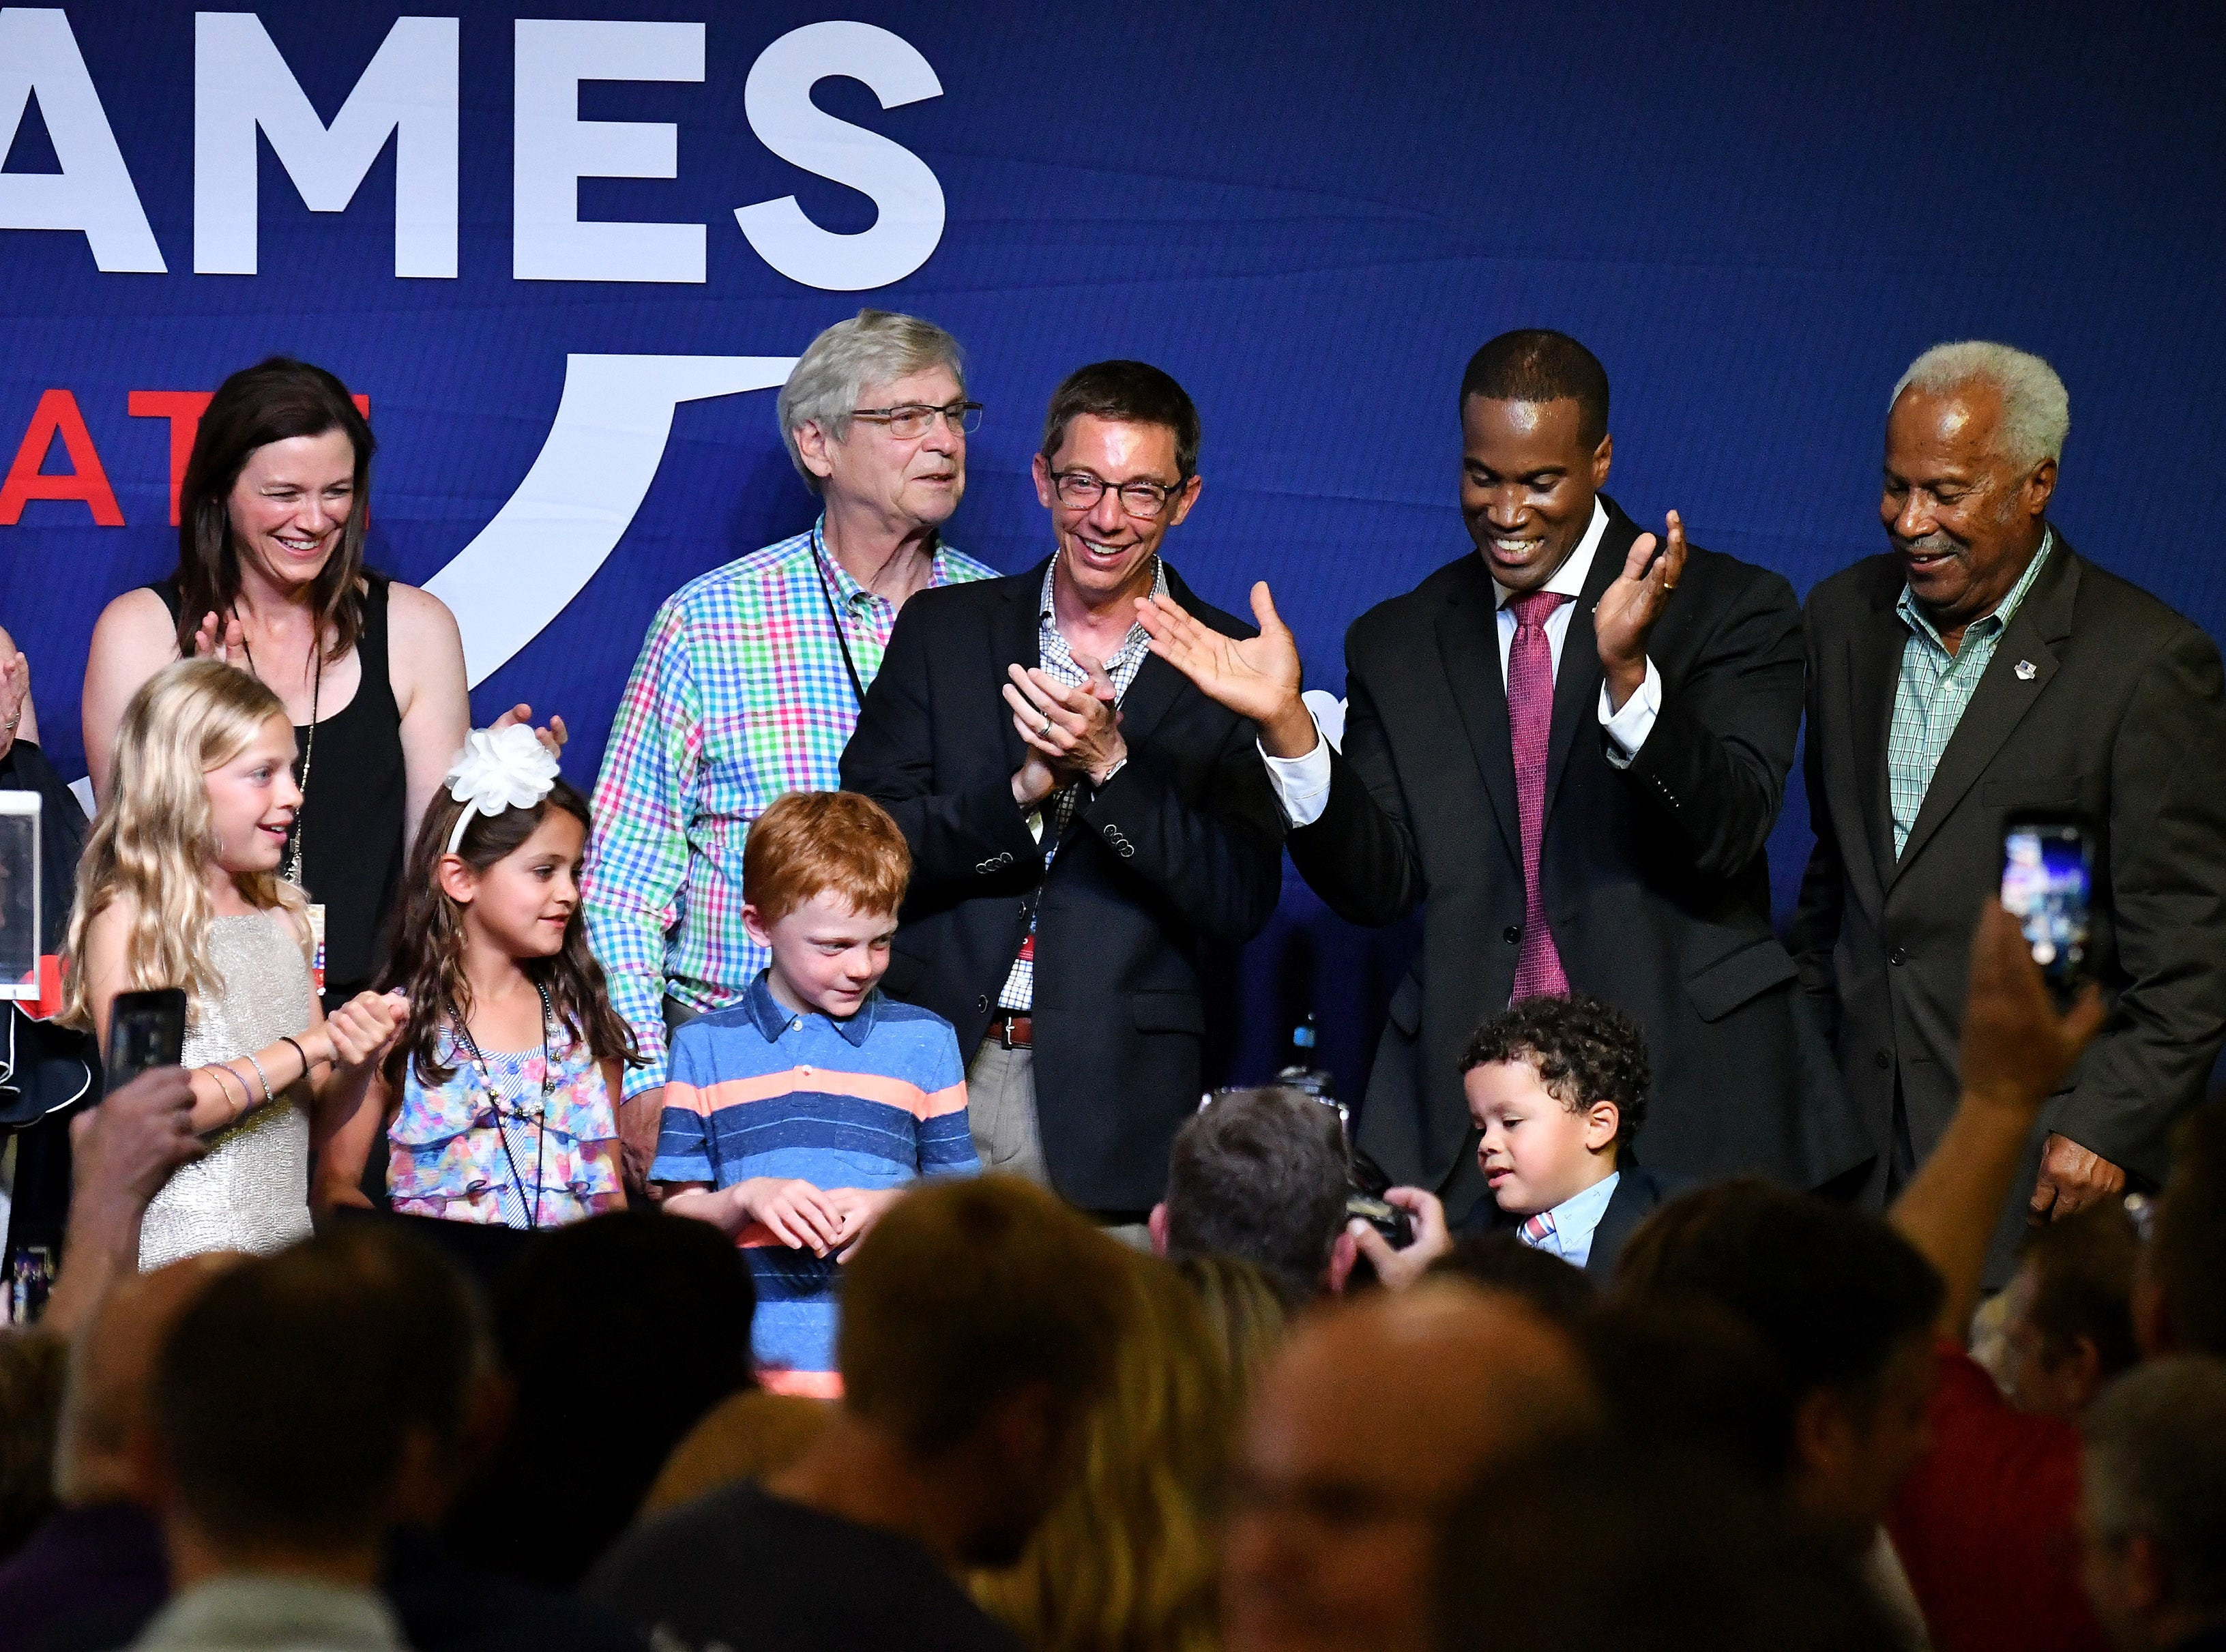 Republican senate candidate John James, second from right, dances with family and friends on the stage afer he speaks at the election night party.